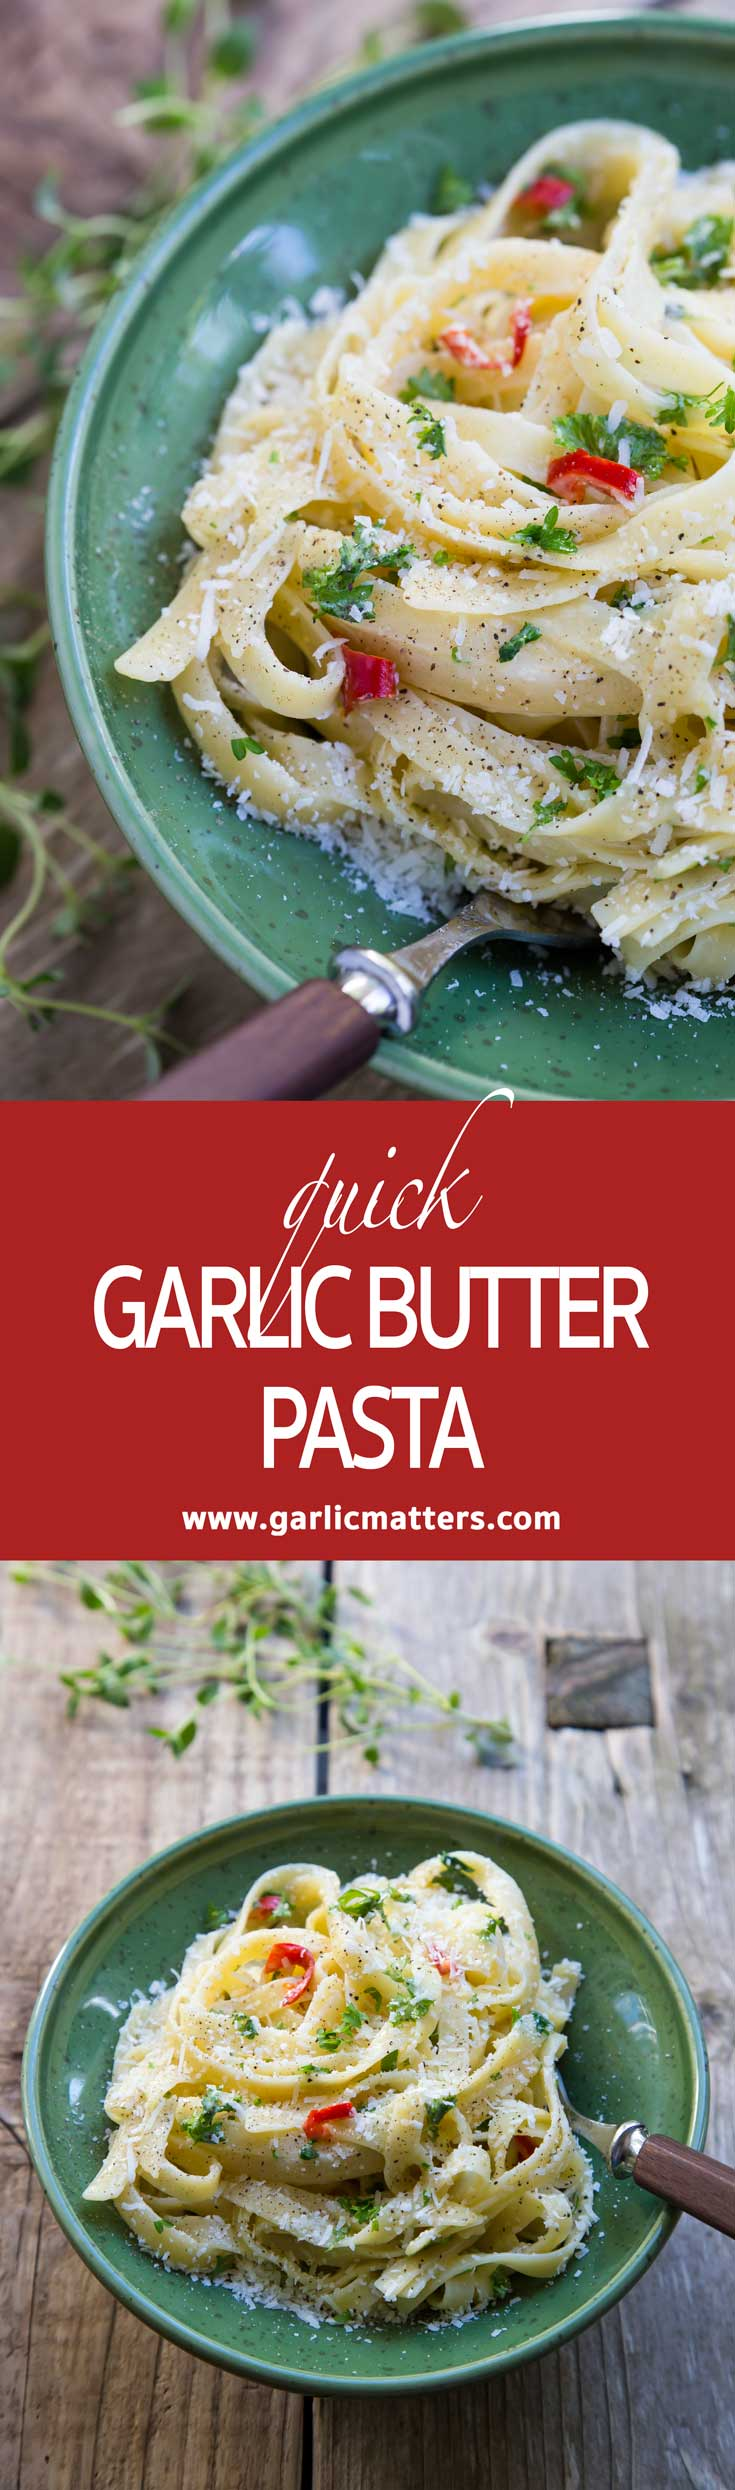 Quick Garlic Butter Pasta Recipe is a vegetarian treat for all true garlic lovers. Perfect for lunch or dinner carb craves. Ready in 20 min.